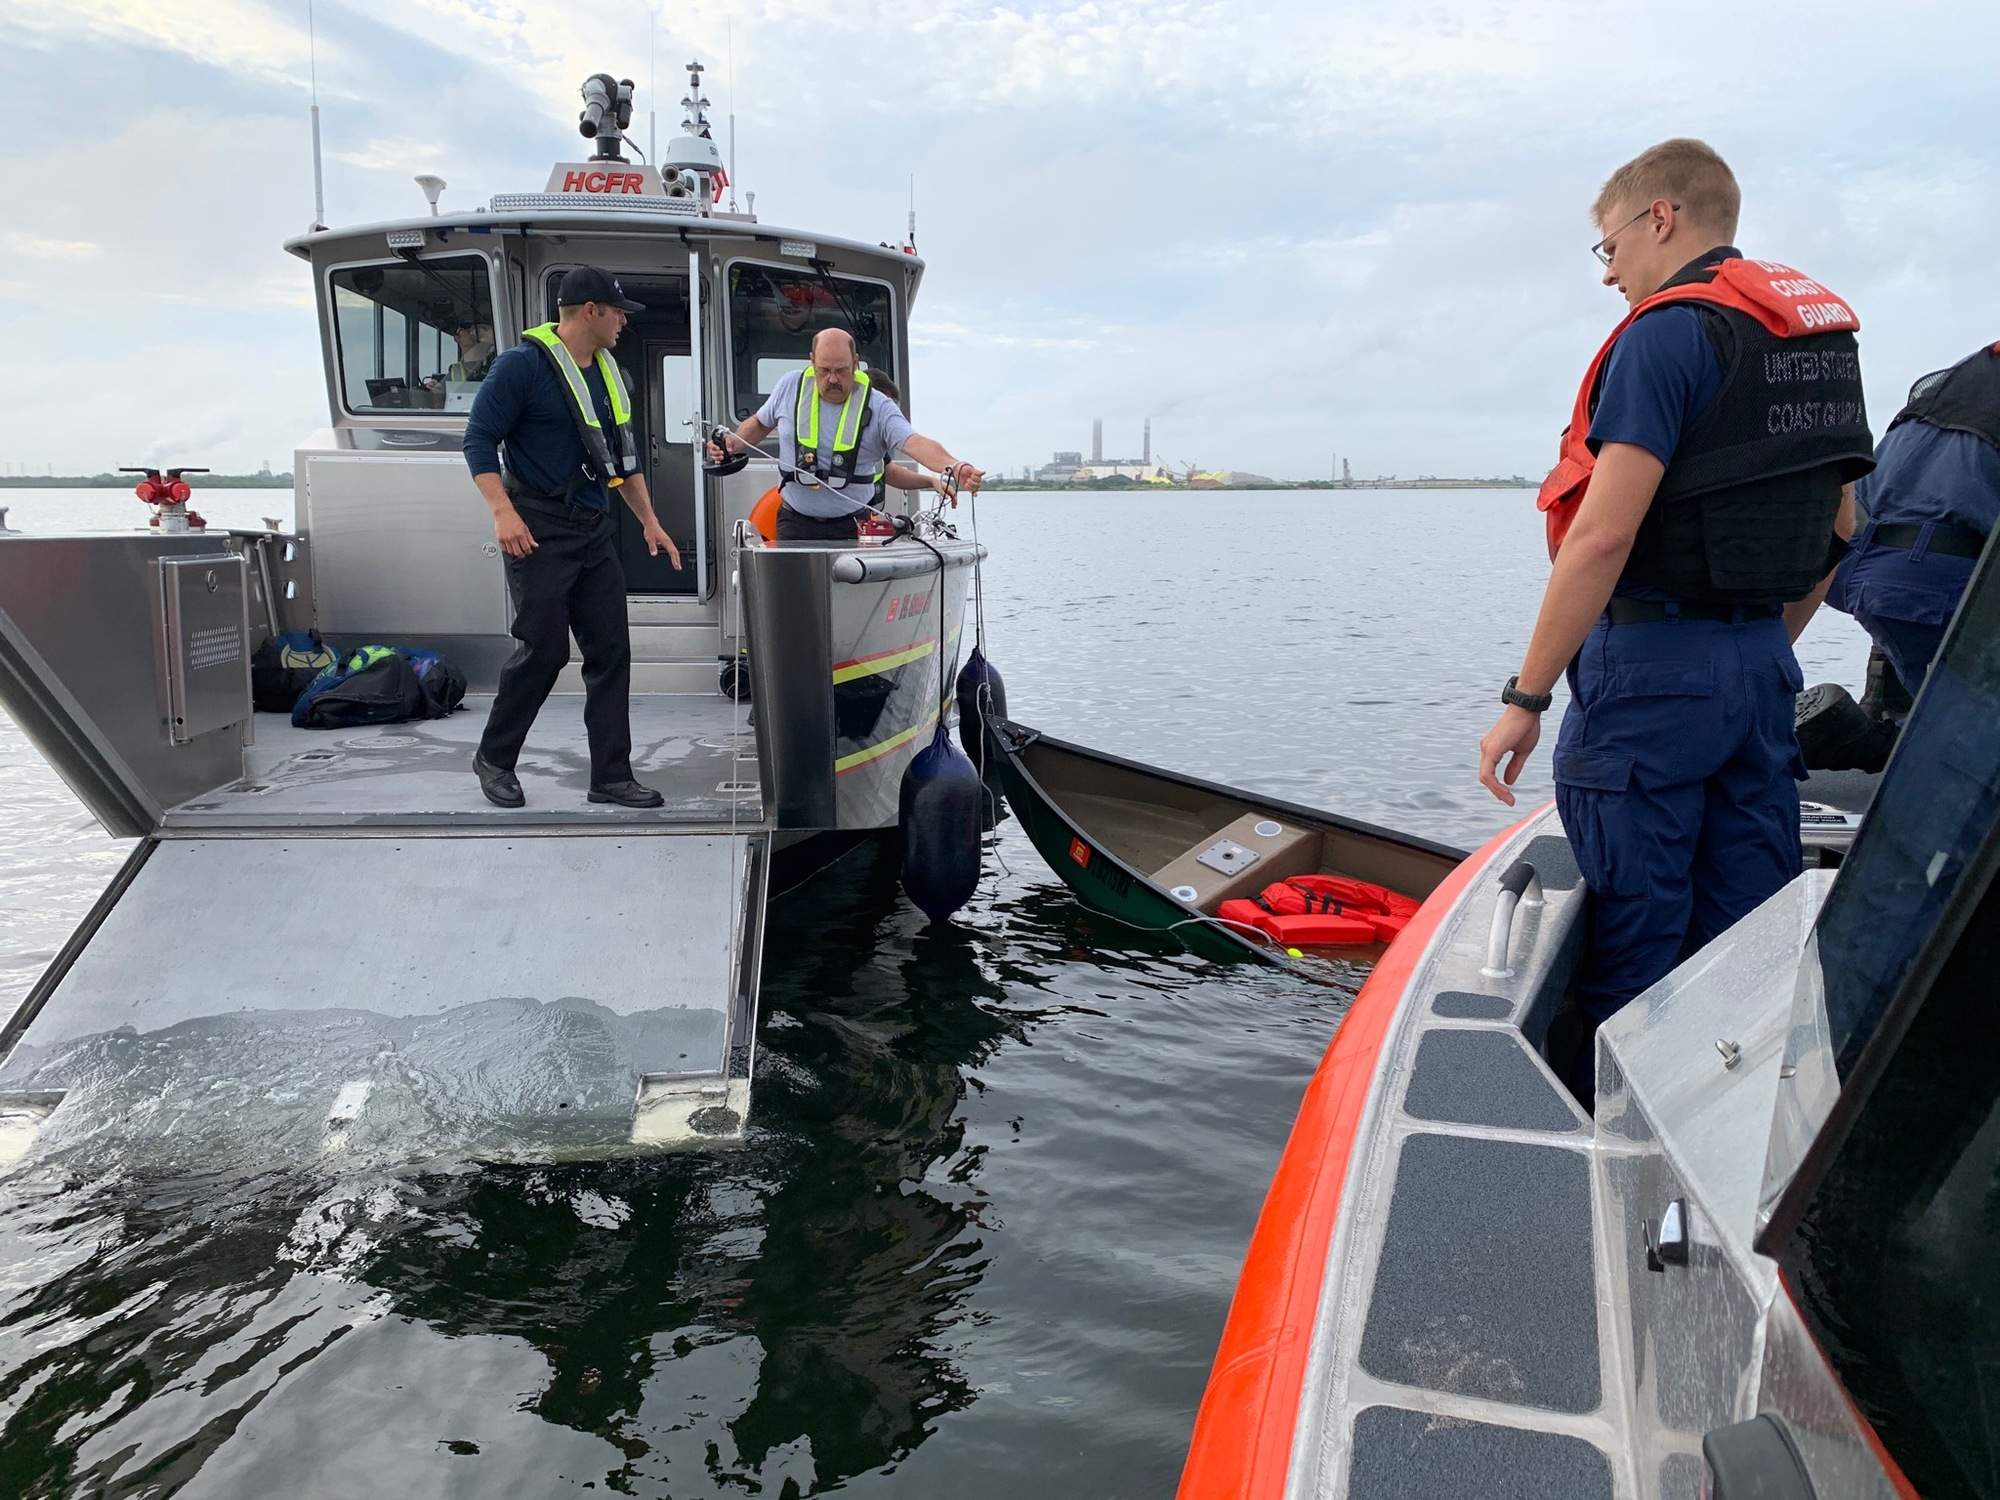 Coast Guard rescues two from capsized canoe in Apollo Beach, Florida